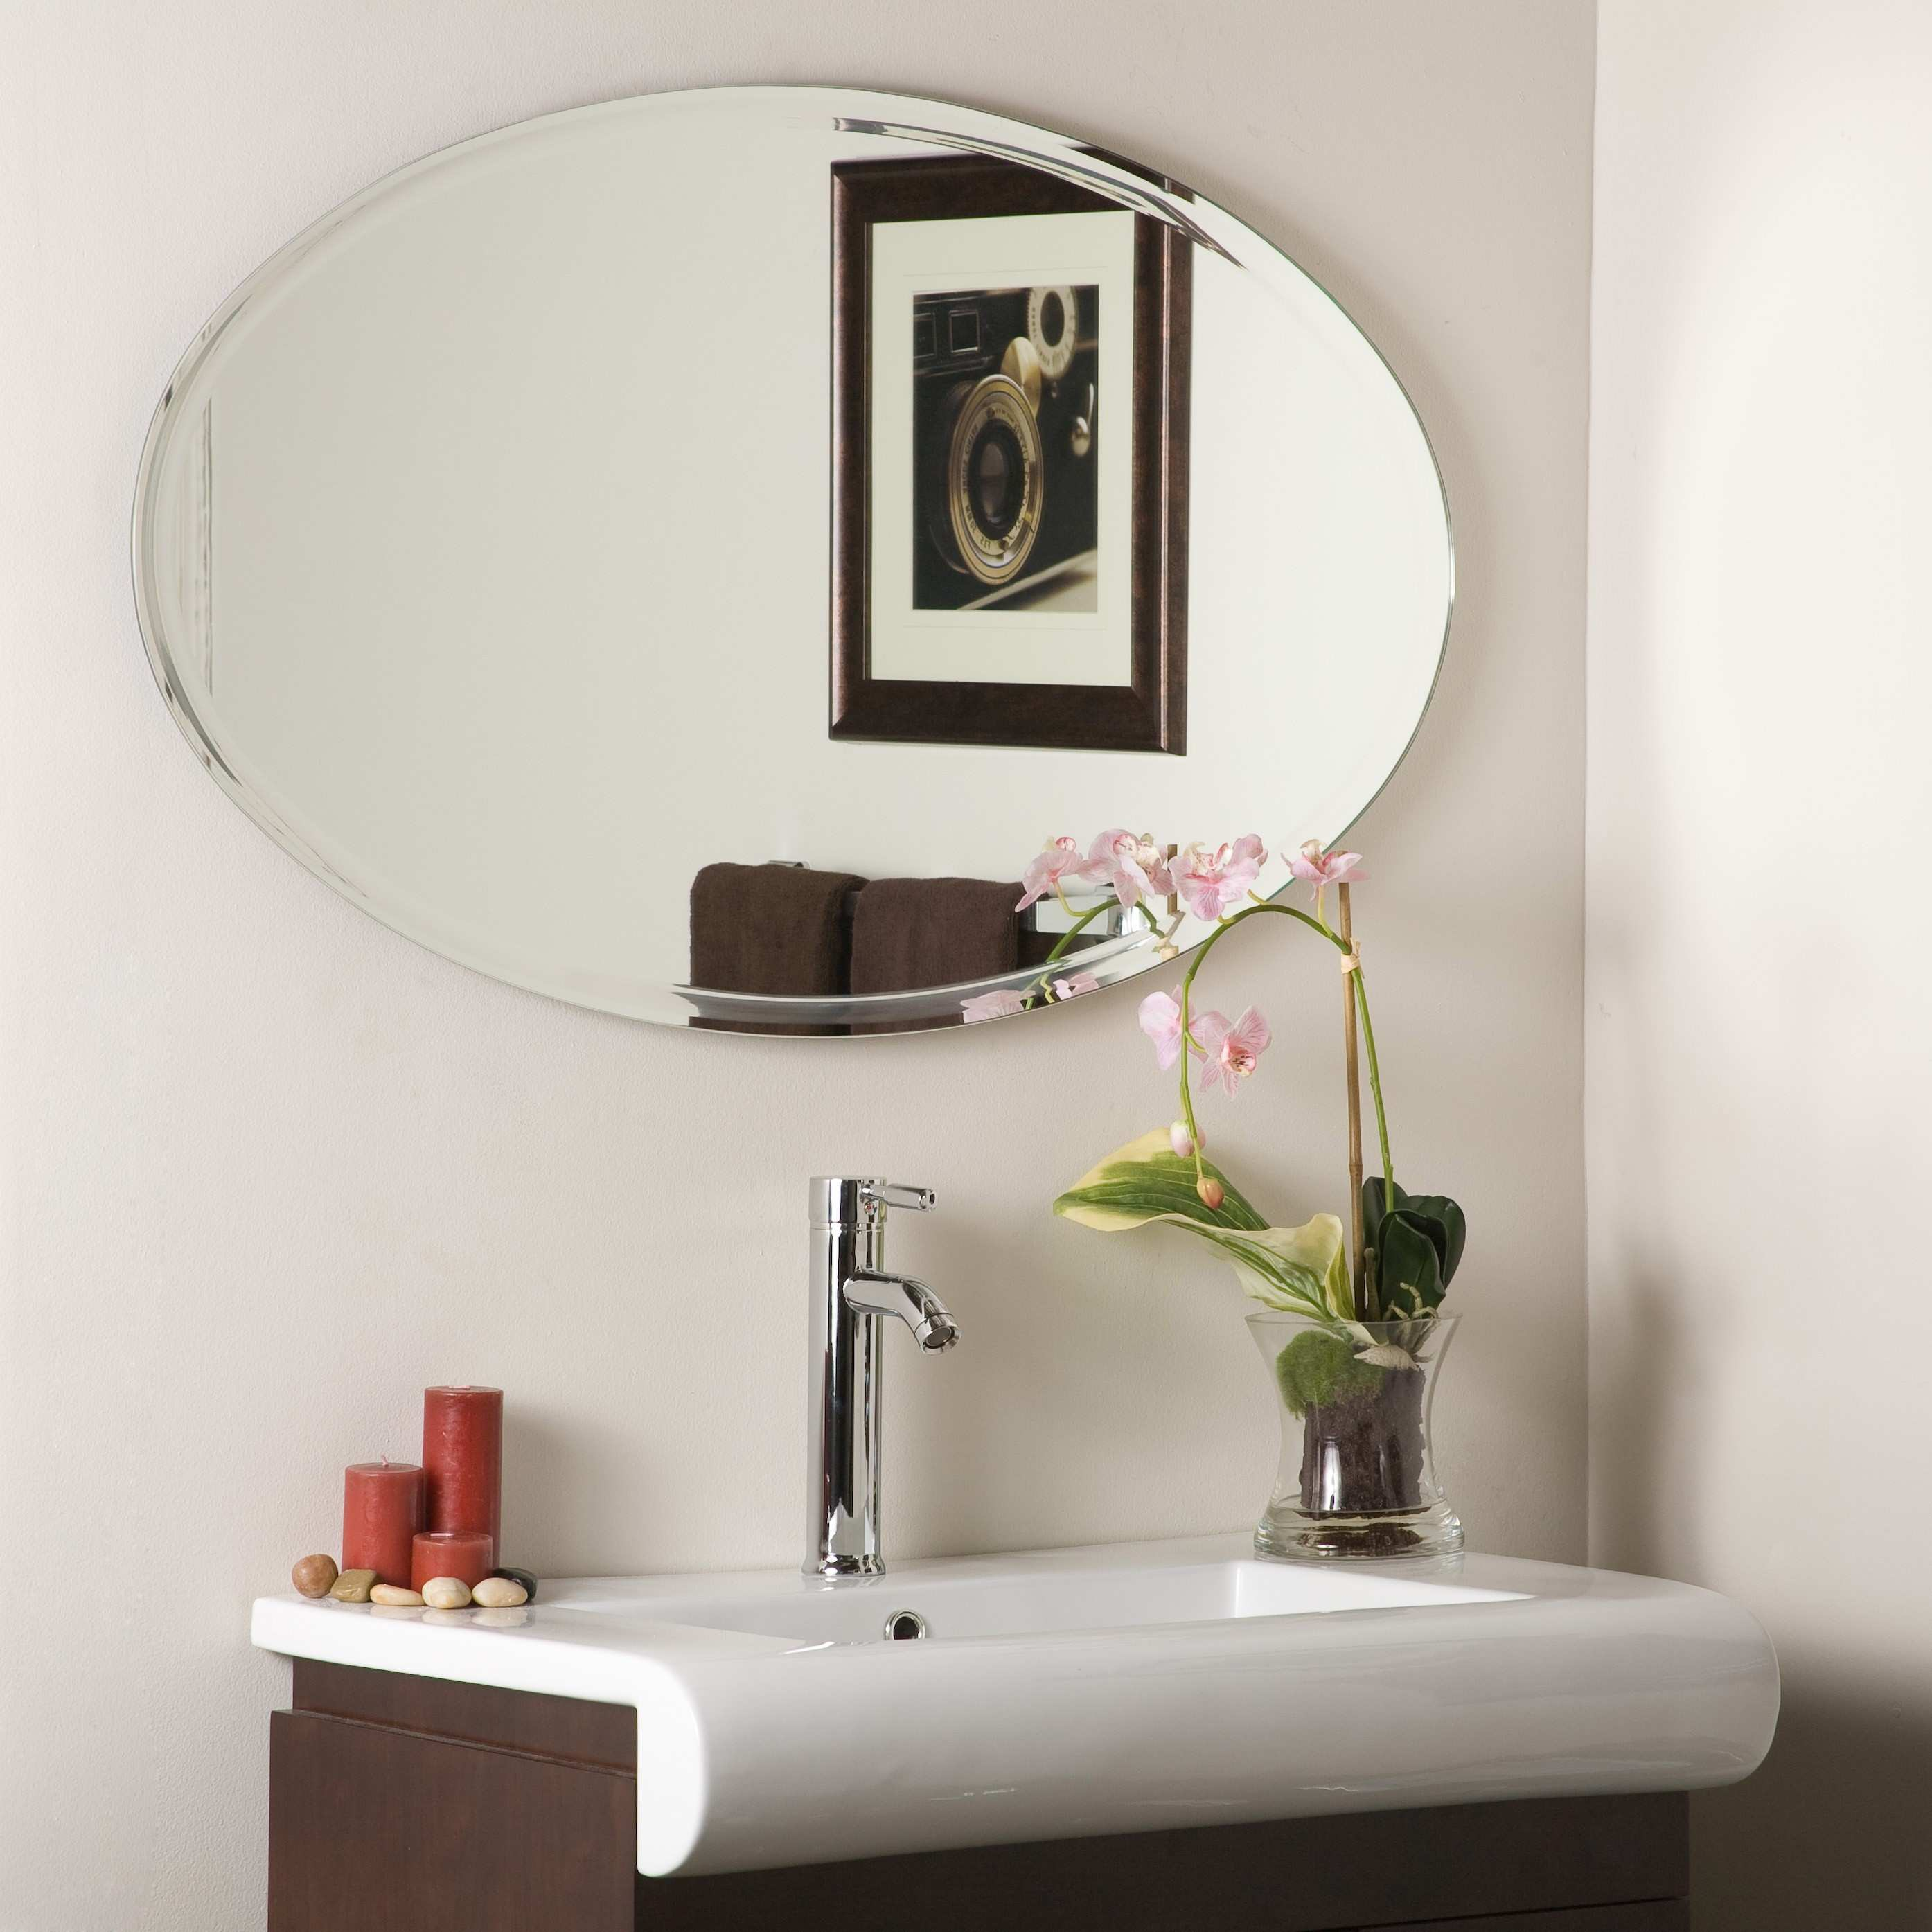 Decor Wonderland Extra Long Oval Wall Mirror Beyond Stores In Sizing